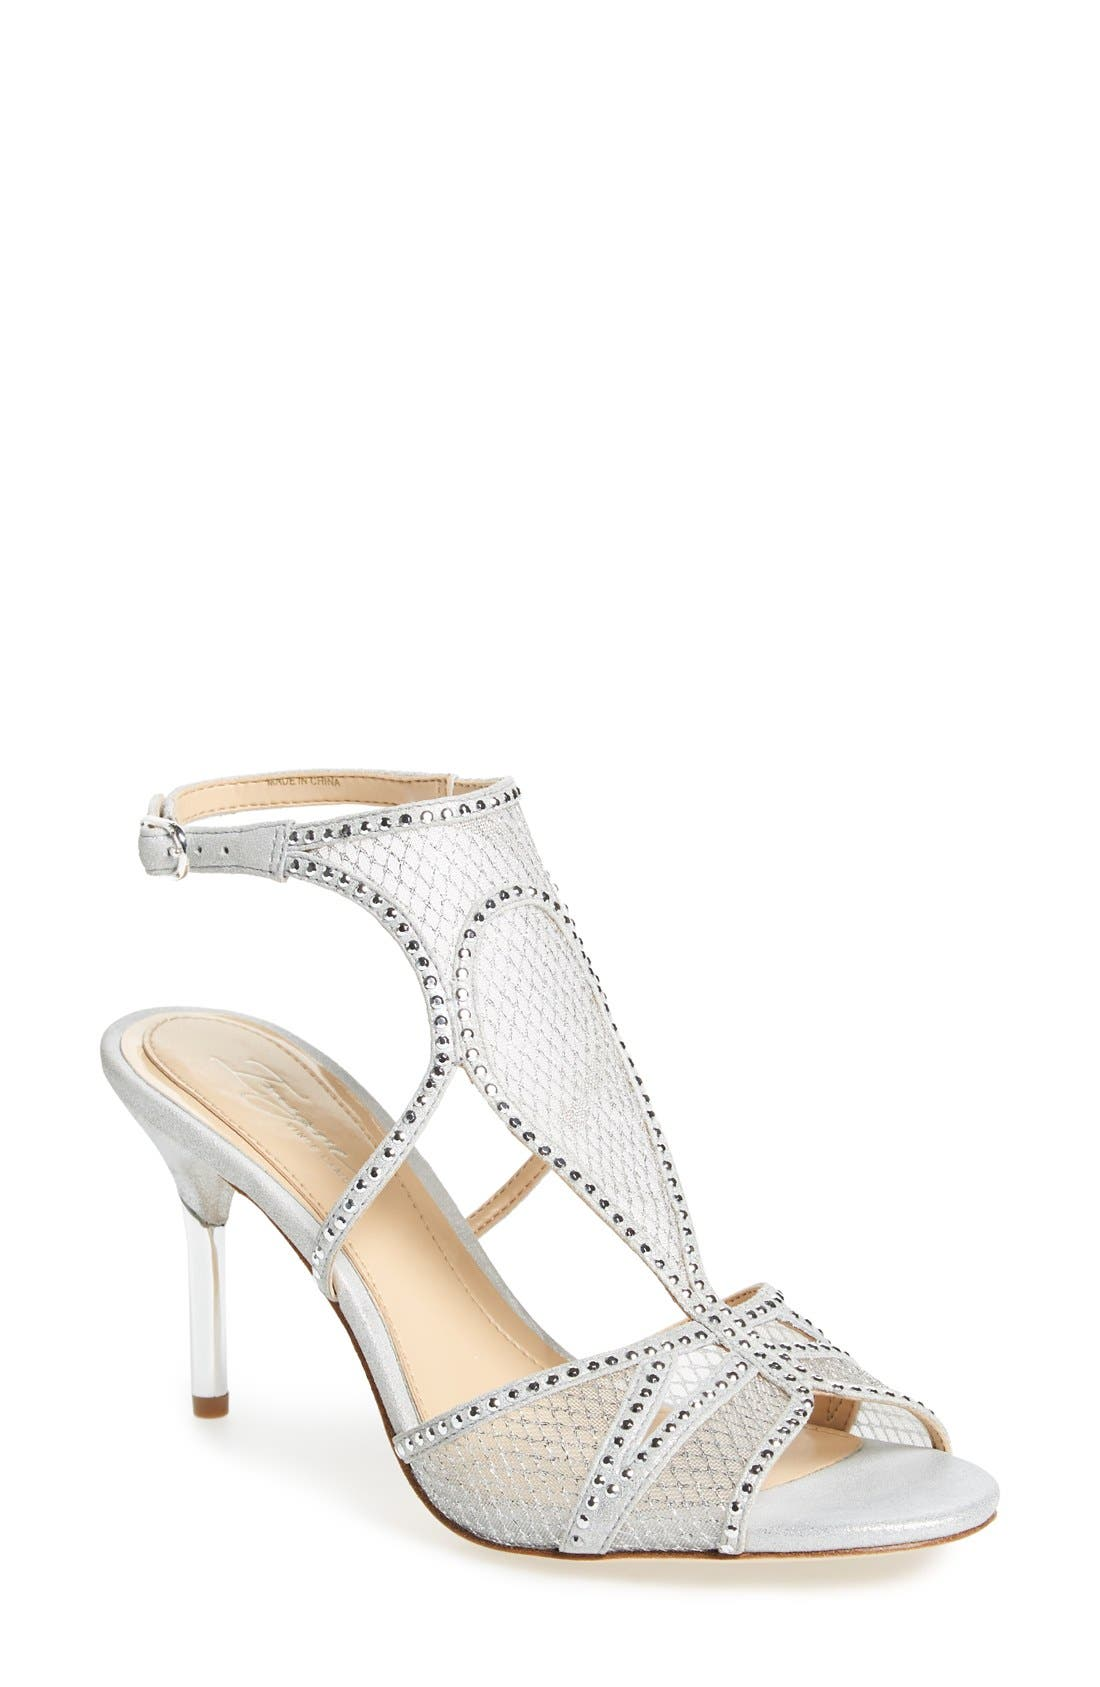 IMAGINE BY VINCE CAMUTO 'Pember' Sandal